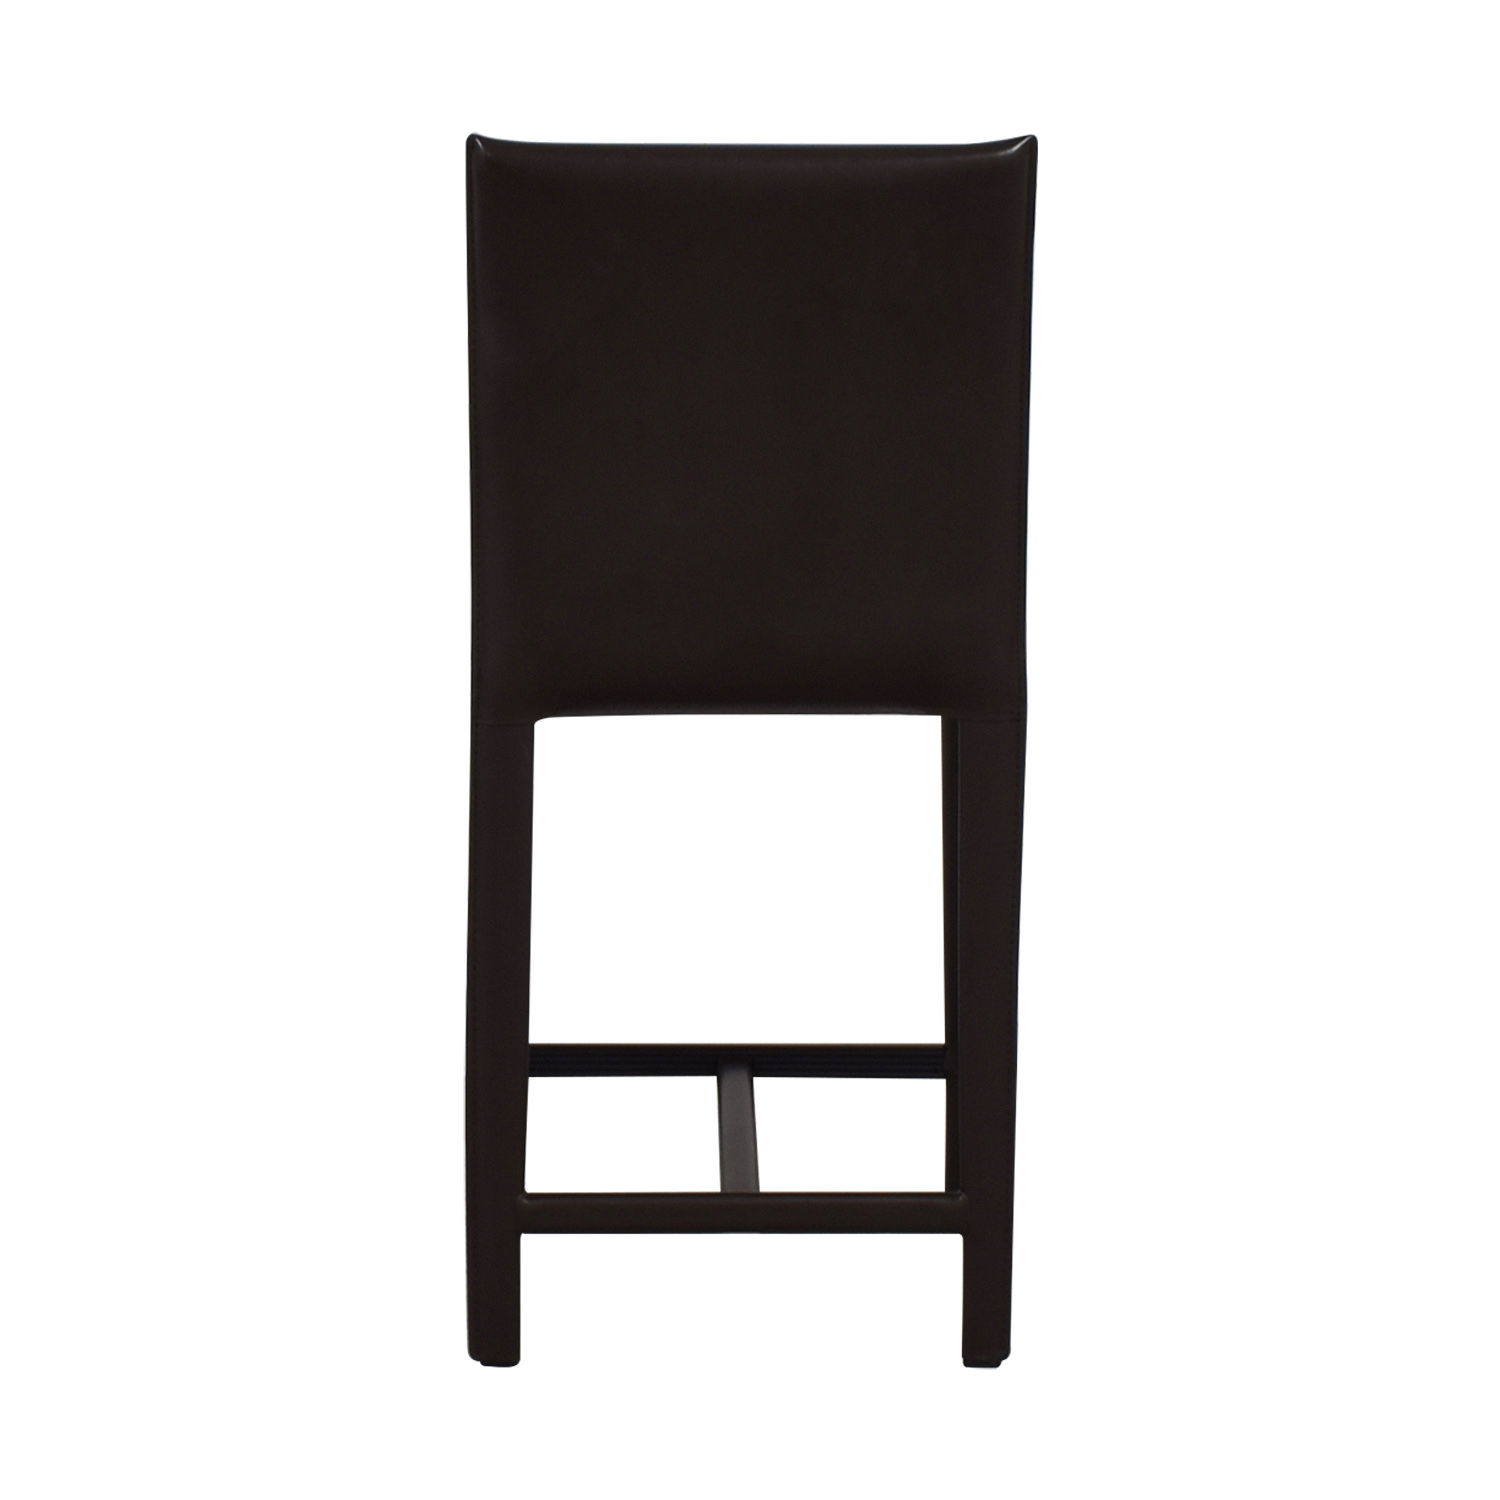 Crate & Barrel Crate & Barrel Brown Leather Bar Stool for sale